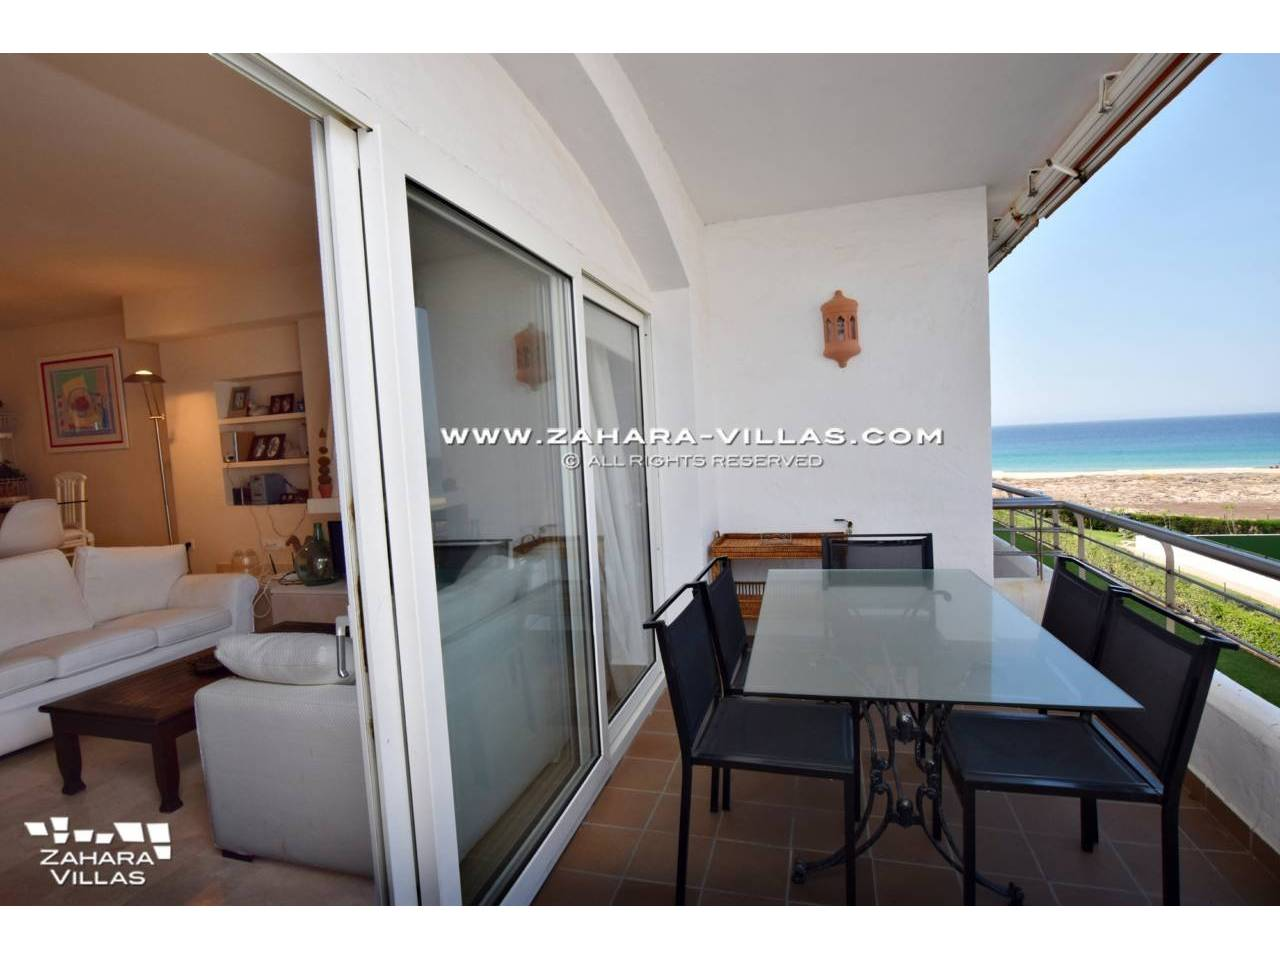 Imagen 1 de Duplex for sale in Urb. Costa Zahara